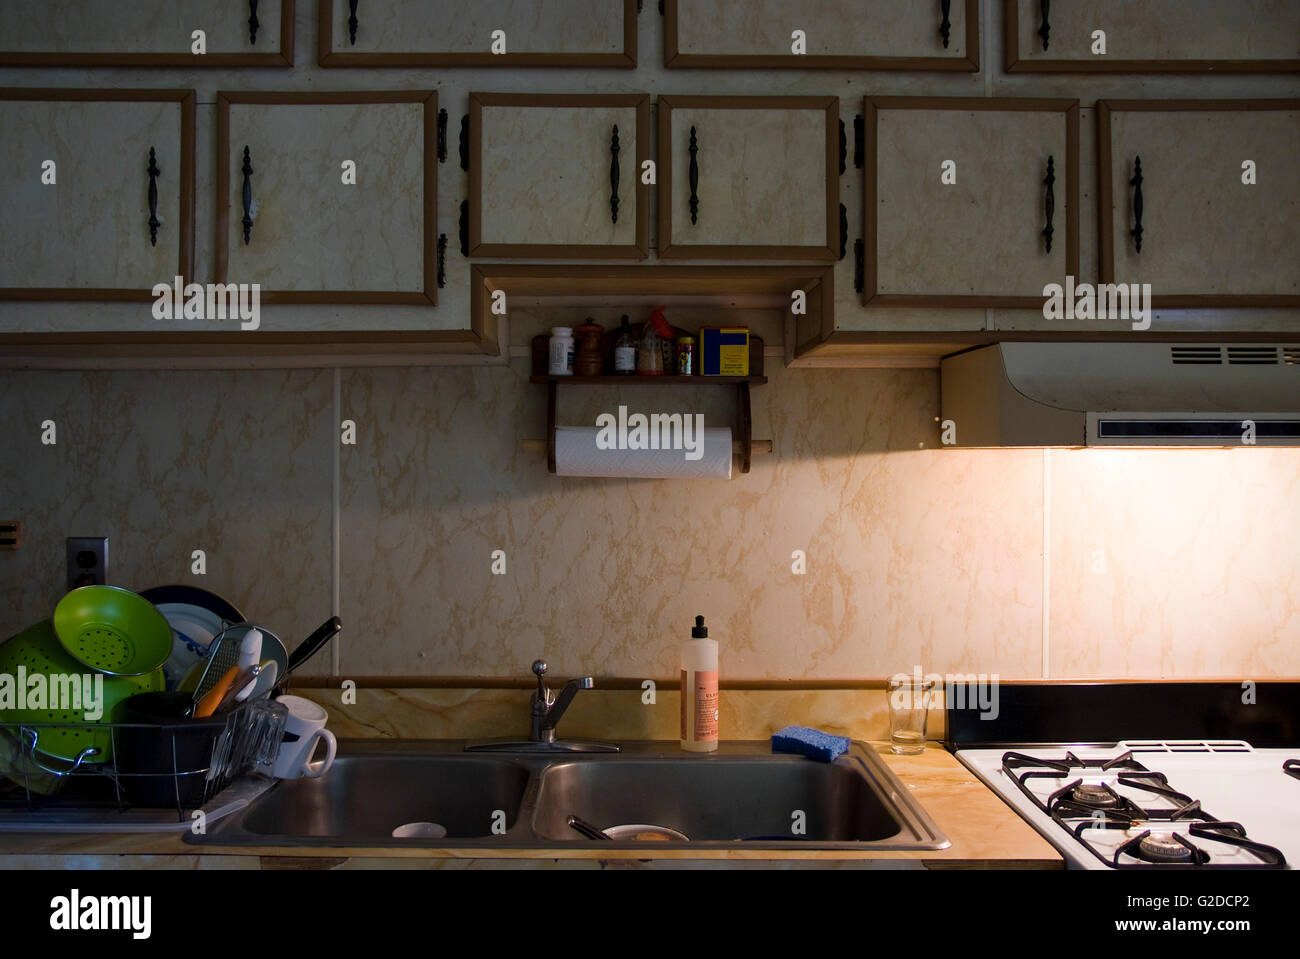 Retro Kitchen, Close-up of Sink, Stove, Counter and Cabinets - Stock Image